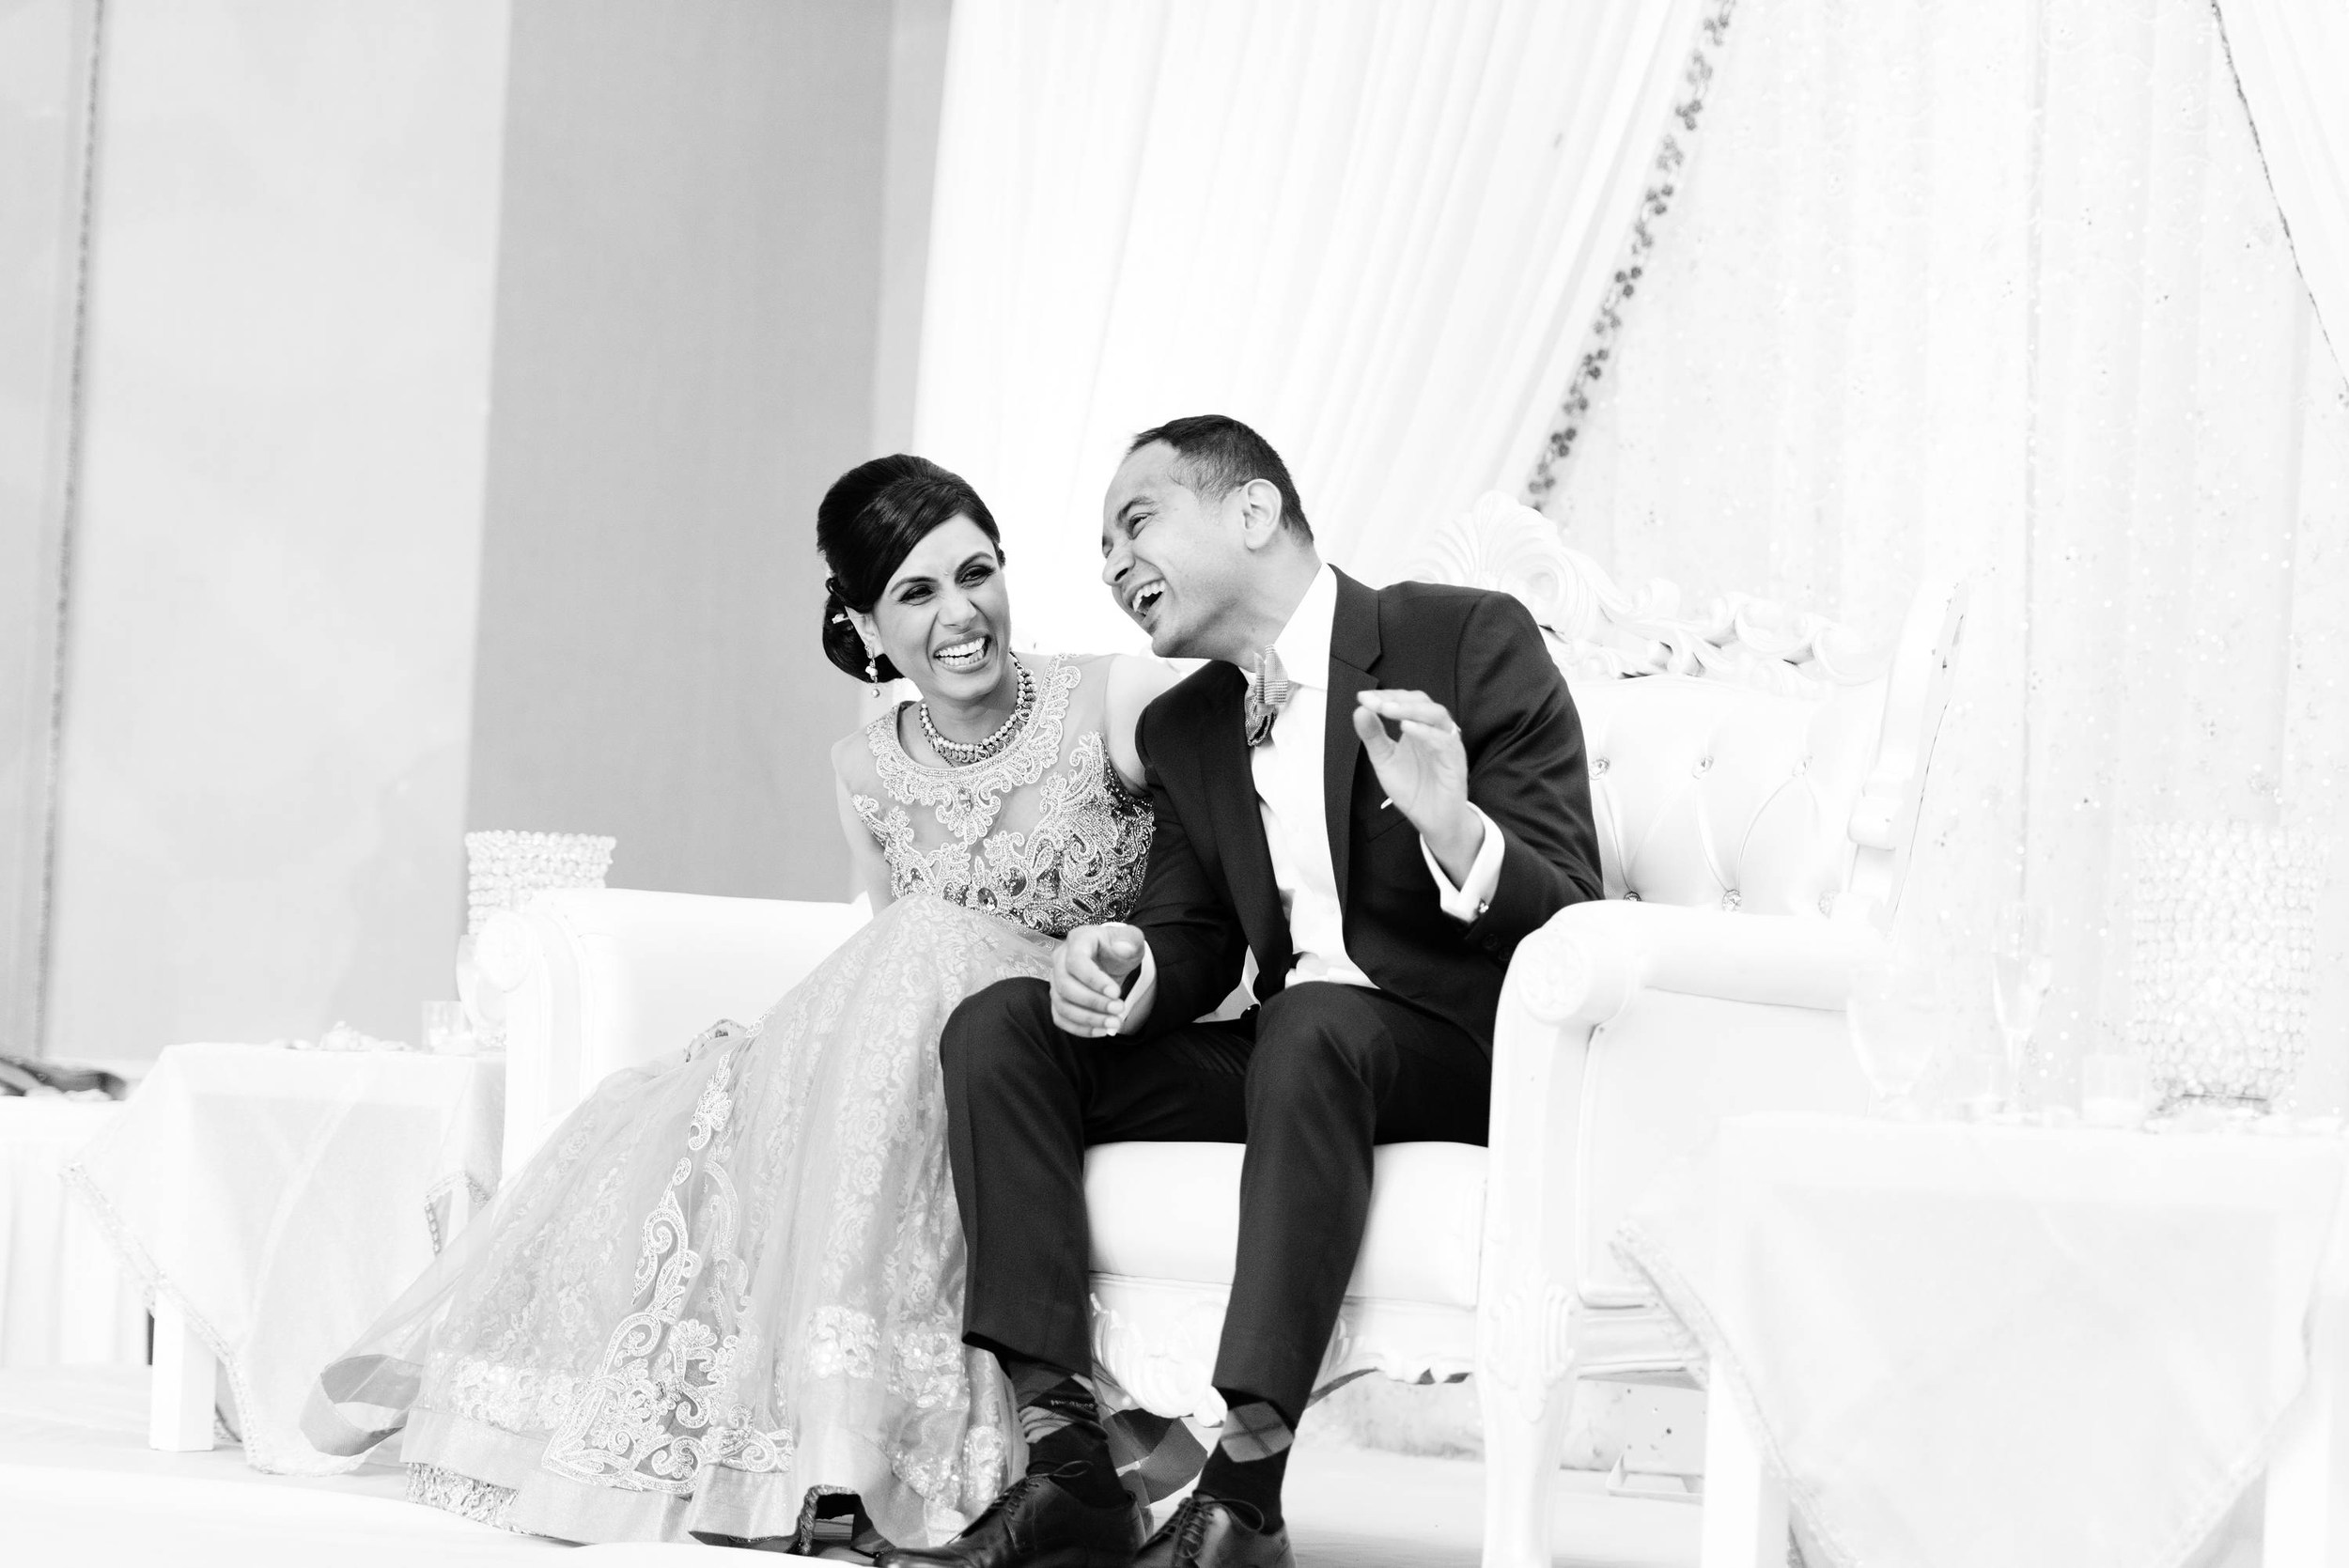 During speeches, groom's sister and his brother-in-law prepared a skit for our newly wedded couple in their reception. Our bride and groom had a blast during this skit & you can feel all the emotions